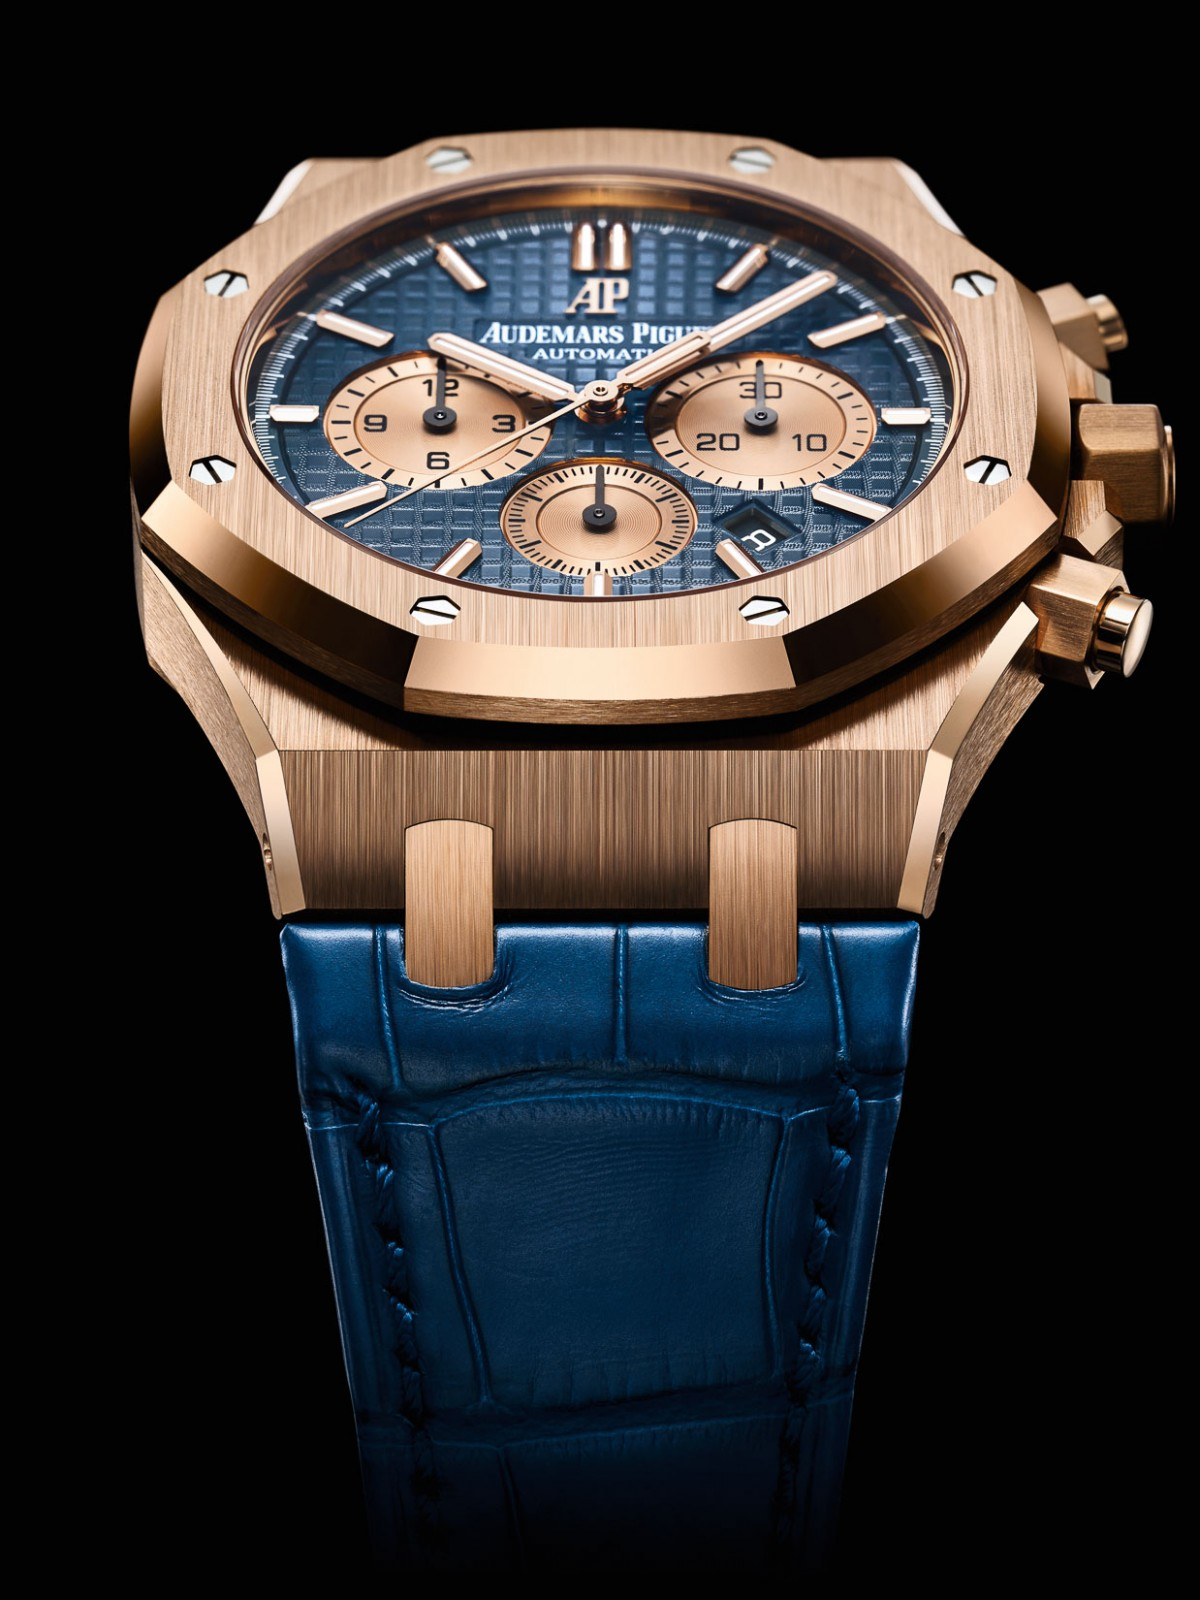 replicas-Audemars Piguet-3